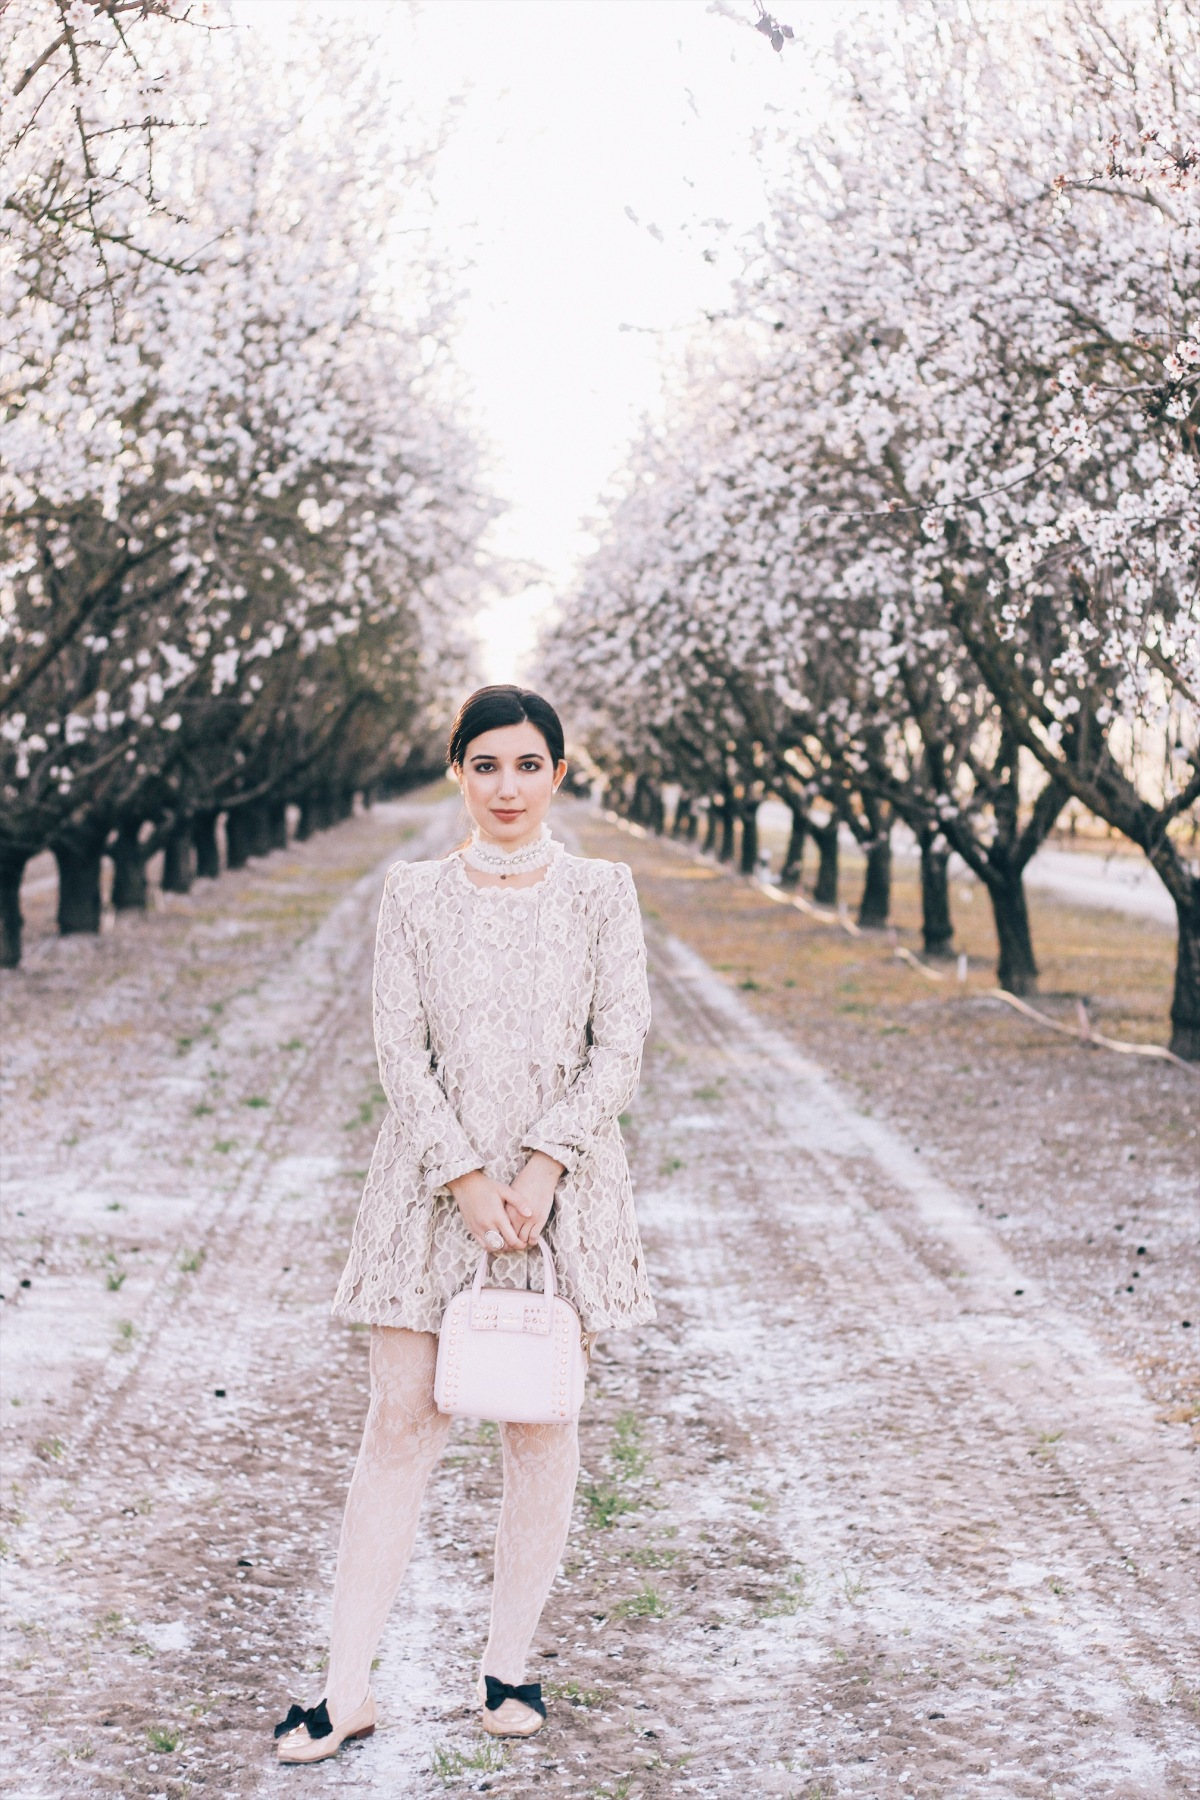 lace, coat, Kate Spade, loafers, pink, vintage, choker, girly, blossoms, spring, spring lookbook, spring outfit, high fashion, couture, fashion editorial, necklace, floral, spring style, style, outfit of the day, ootd, lotd, bows